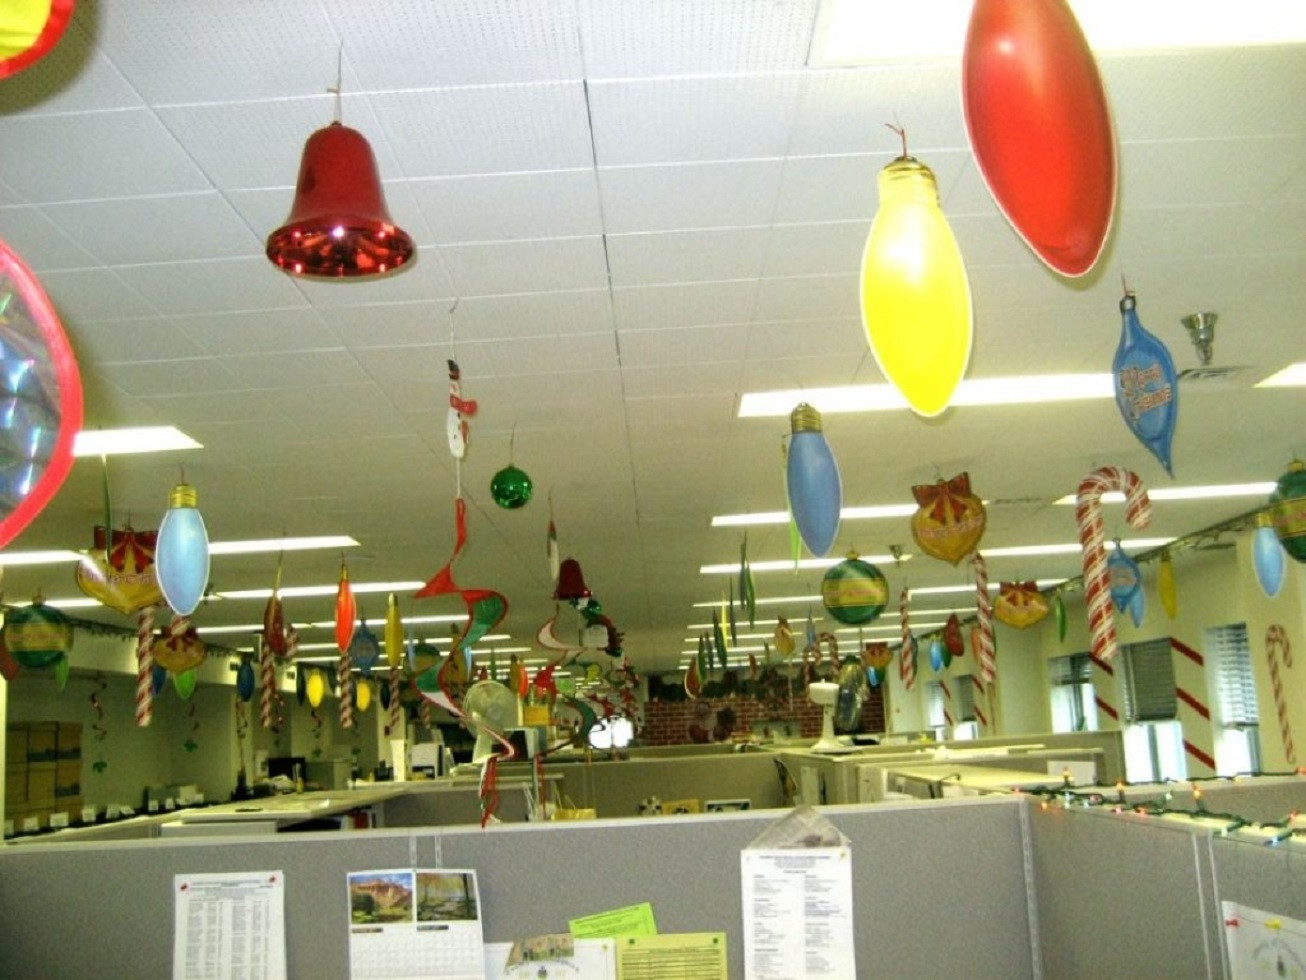 Ideas For Office Christmas Party  5 New Year's Party Ideas That Won't Get You in Trouble